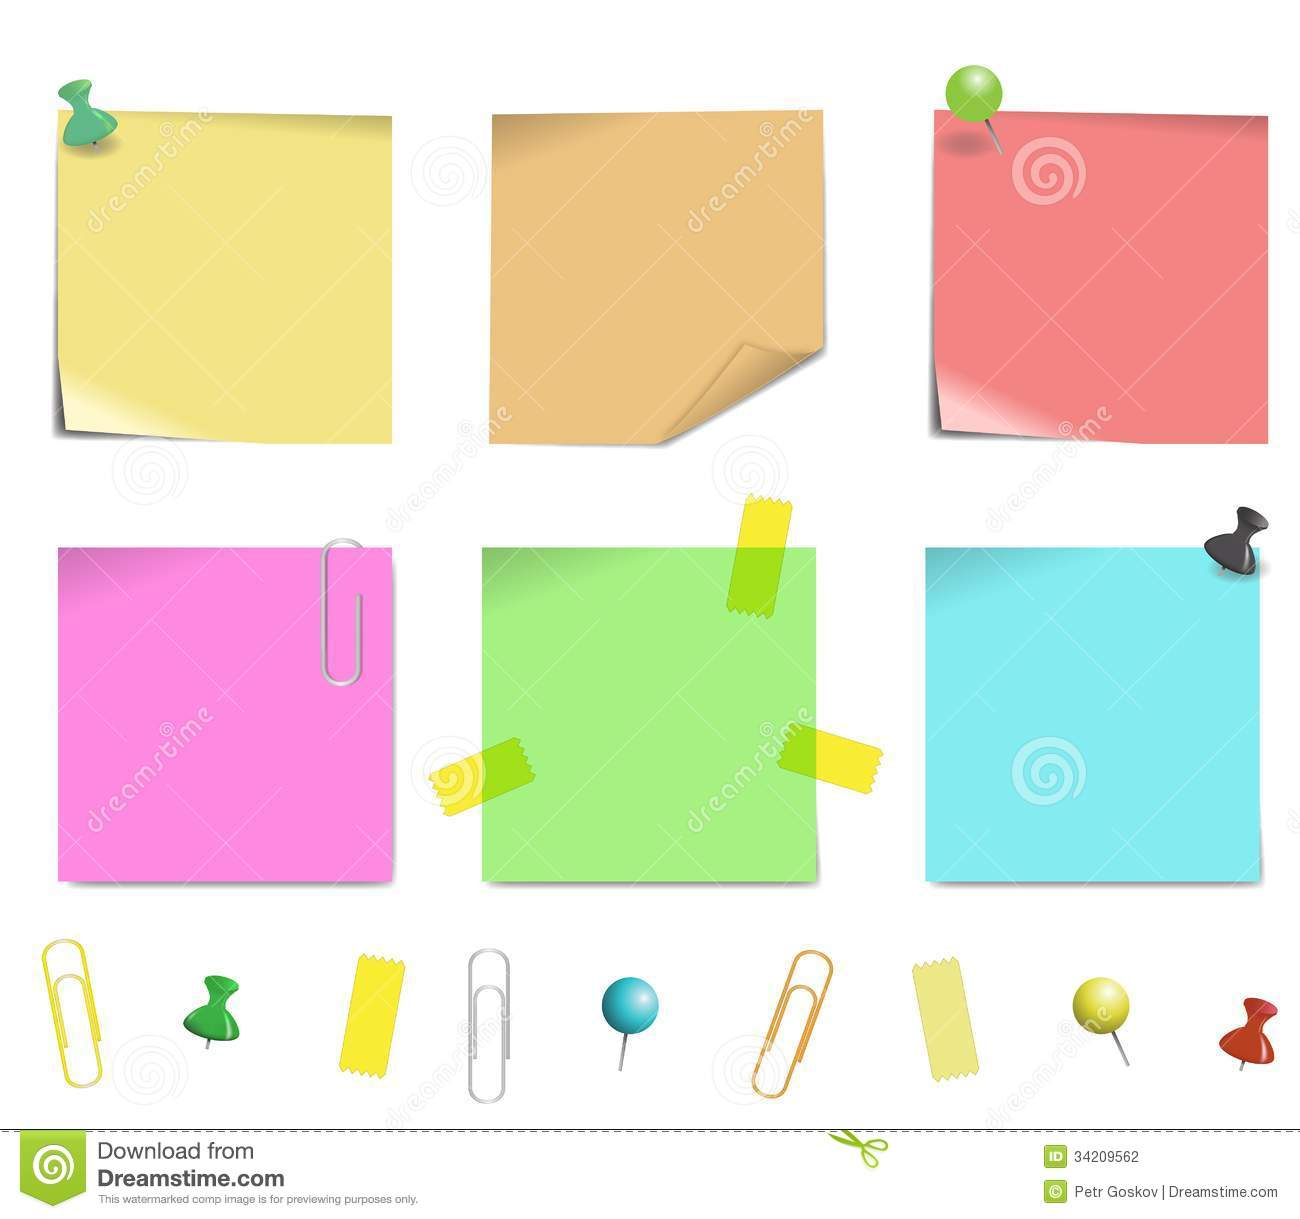 Free vector graphic sticky note note info paper free image on - Royalty Free Stock Photo Illustration Isolated Note Paper Sticky